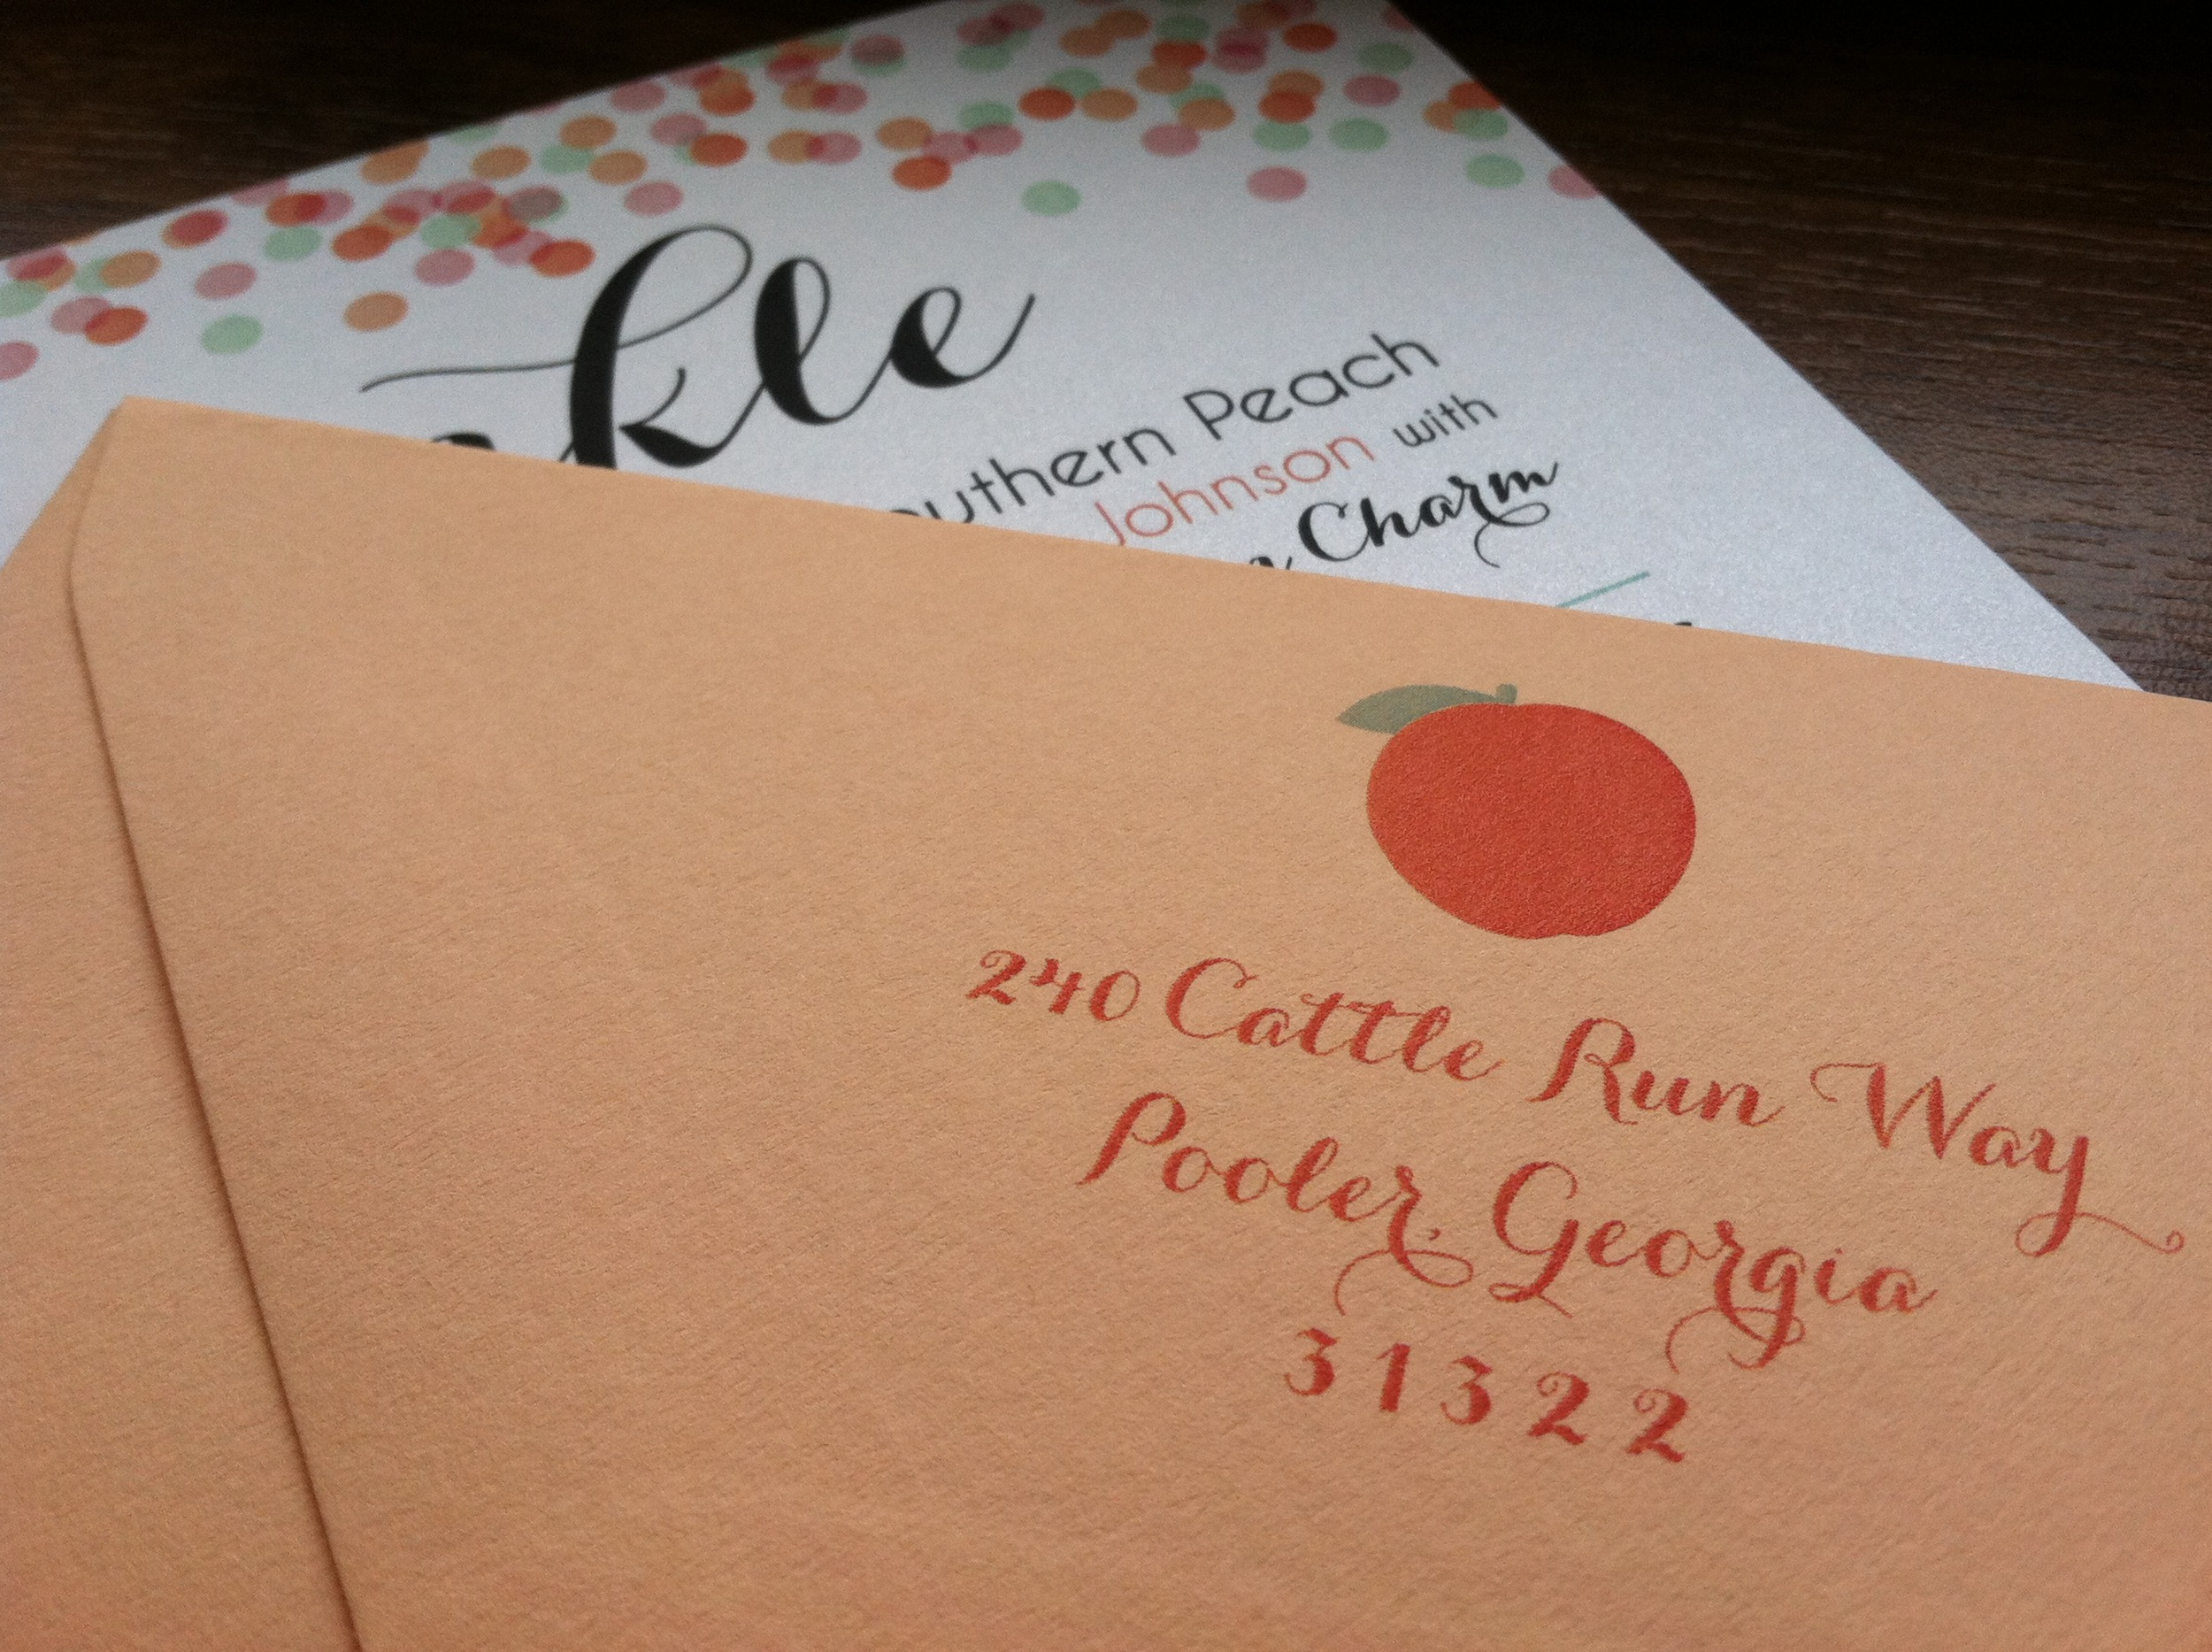 Love a matching envelope